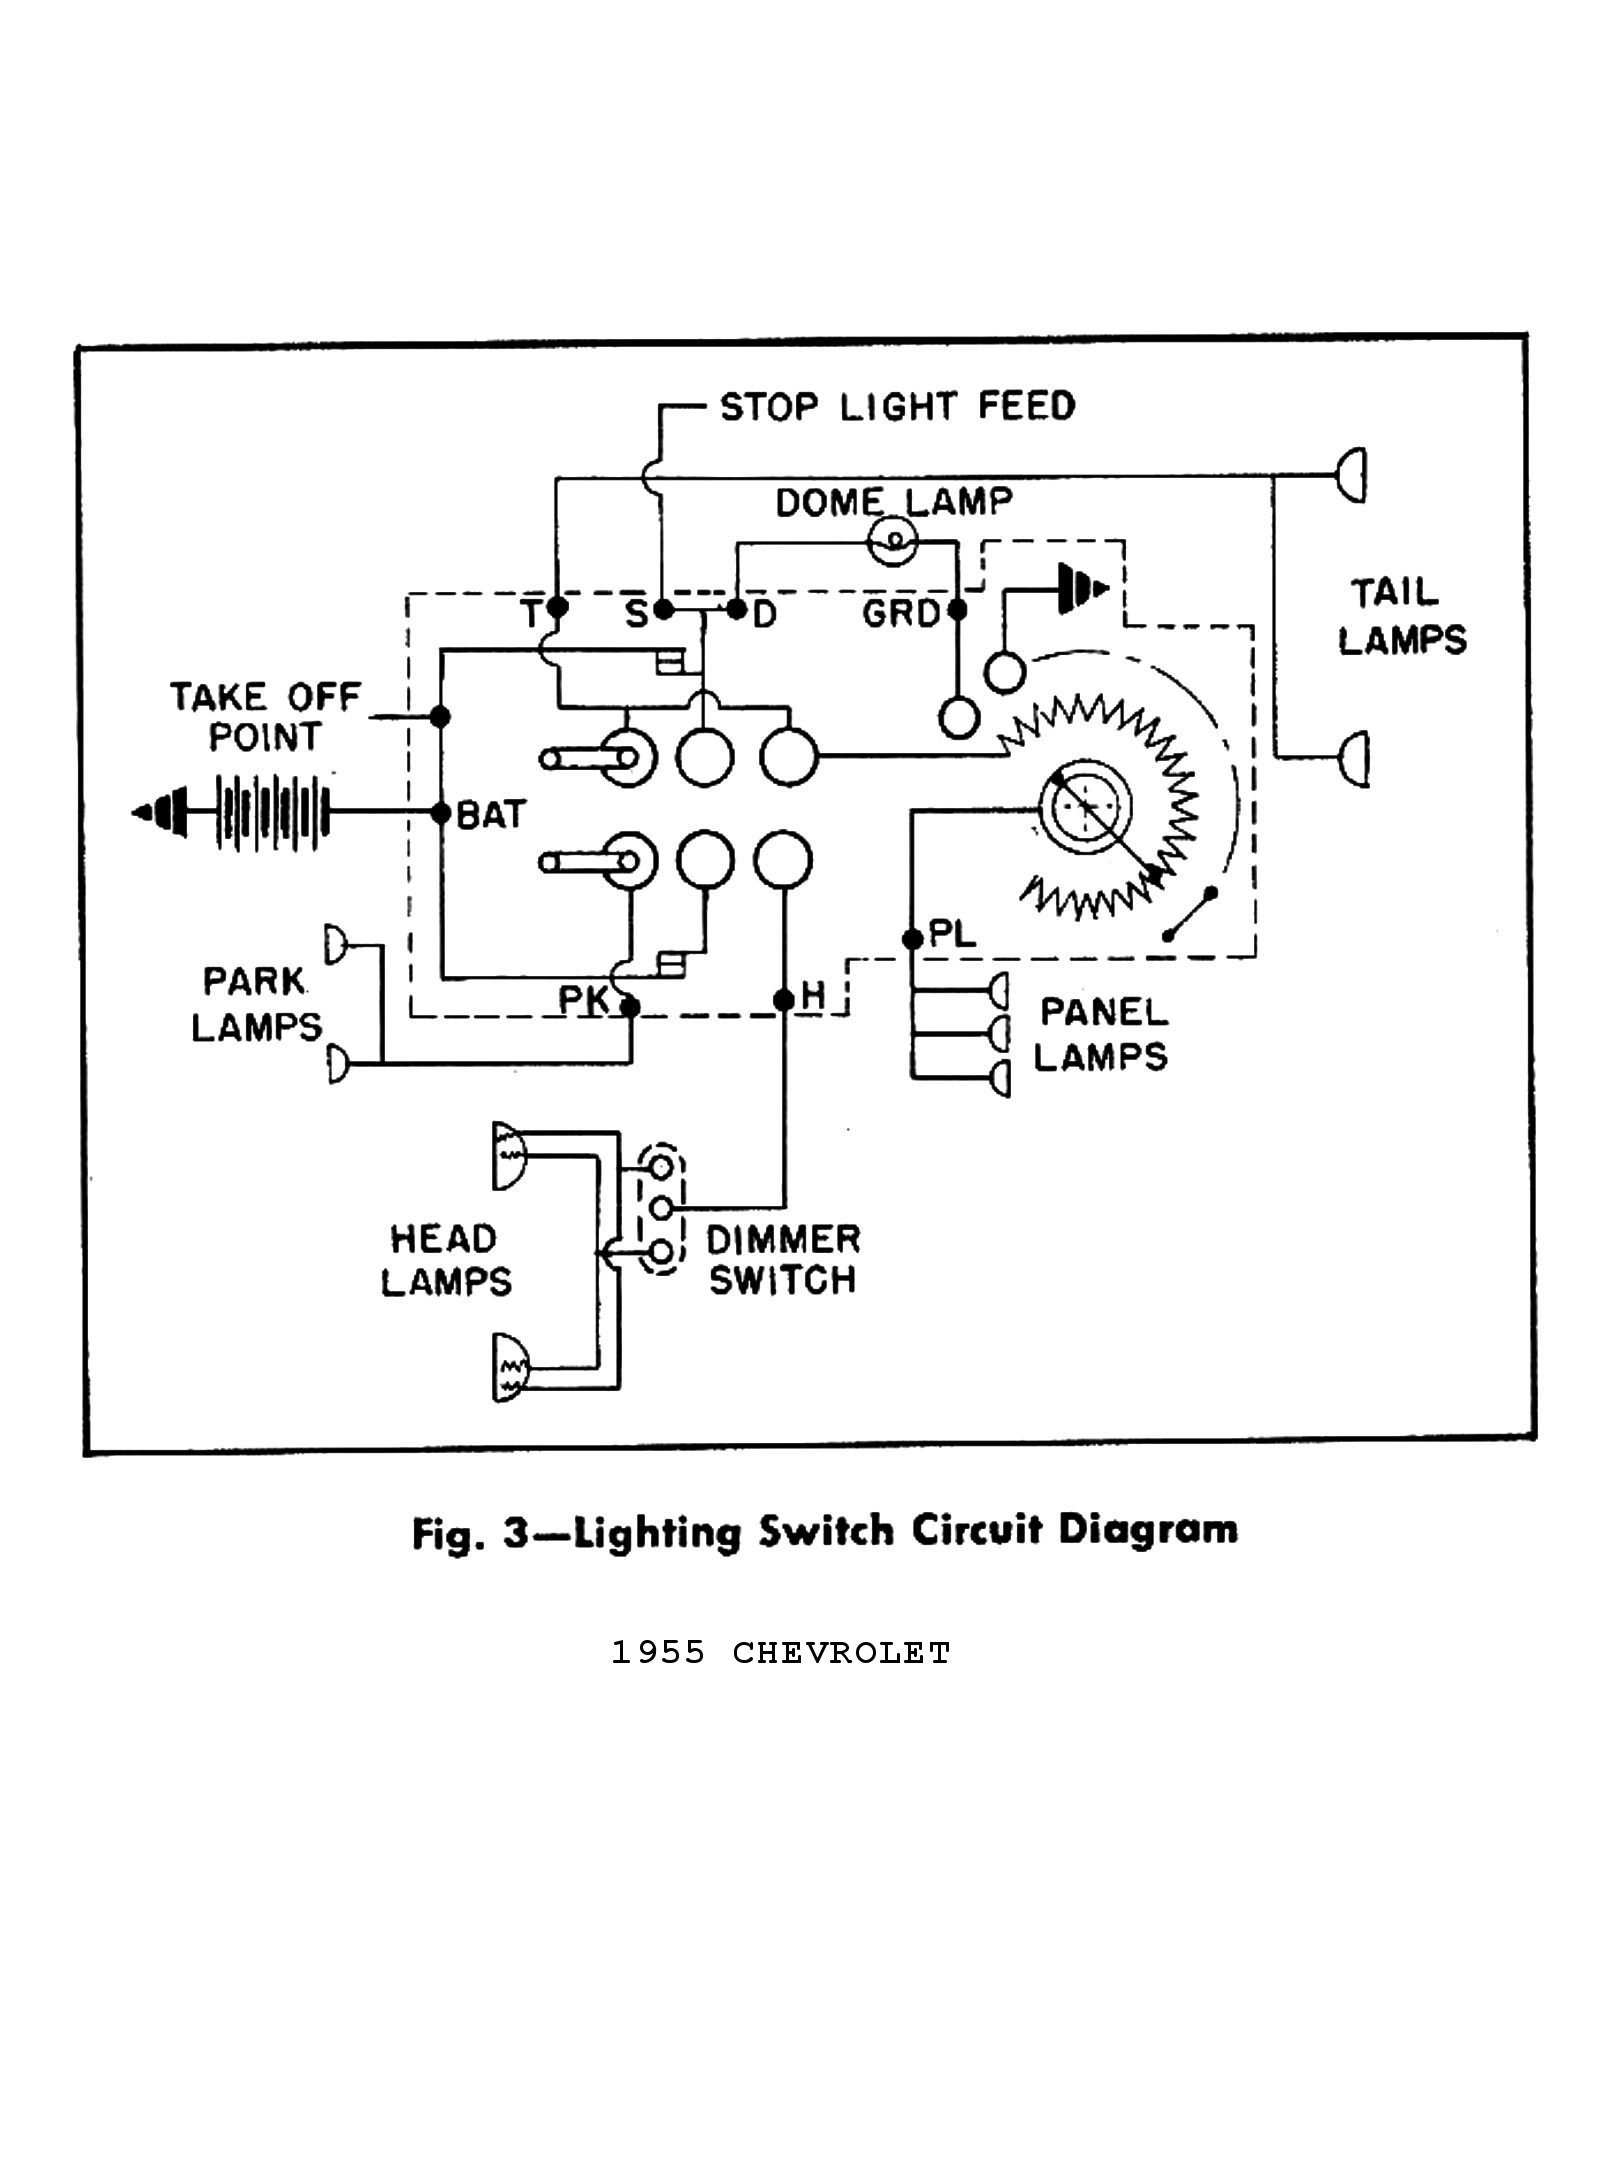 Light Switch Wiring Diagram Chev Car Just Another 3 Way And Outlet Gm Dome Harness Library Rh 62 Akszer Eu